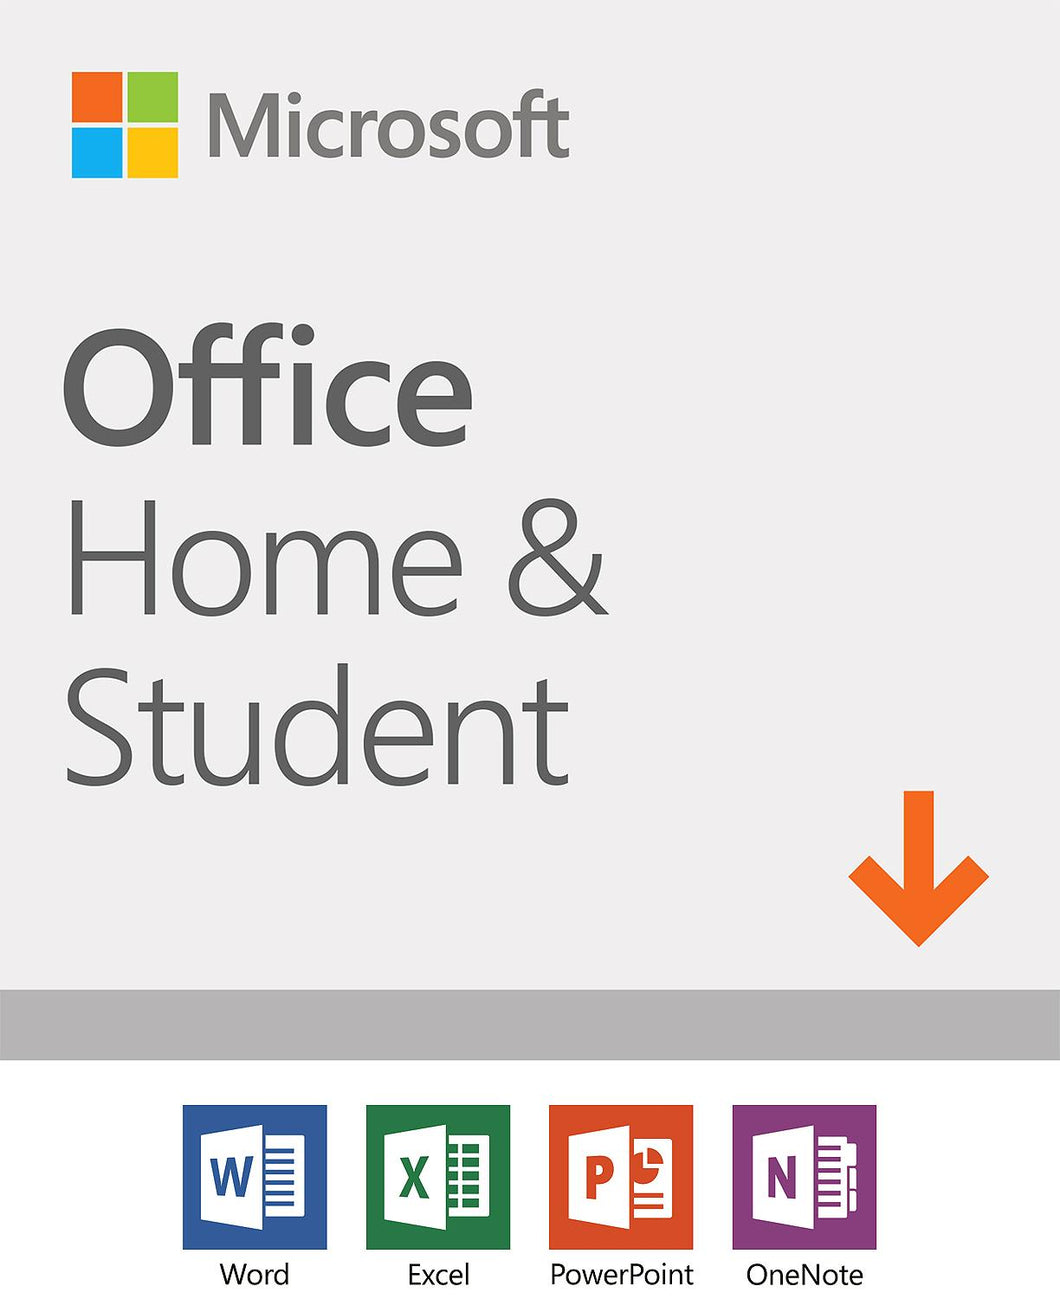 Microsoft Office Home And Student 2019 Licensed Digital Key Boxed Online Activation Office 2019 HS